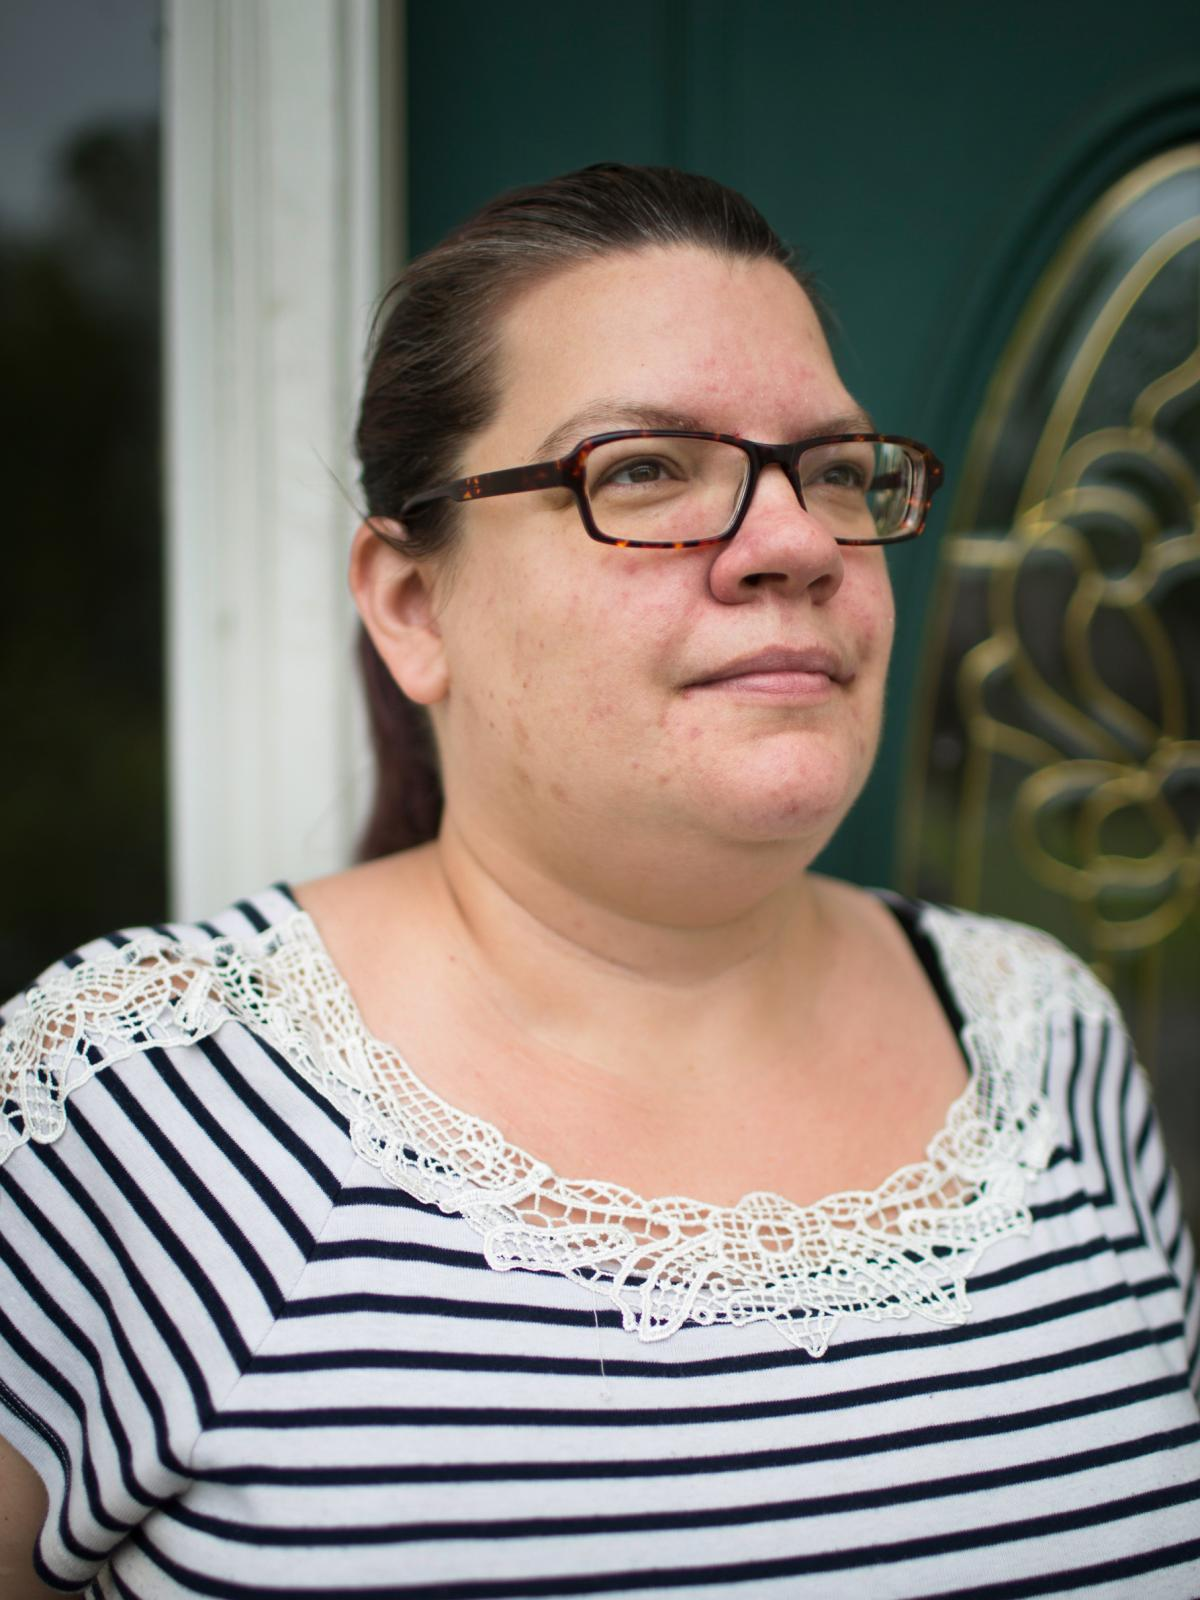 After two years in the VA's Program of Comprehensive Assistance for Family Caregivers, the Wilmots were dropped even though they say George's condition hasn't improved. Jenn Wilmot says the Charleston, S.C., VA encouraged her to reapply, and then rejected